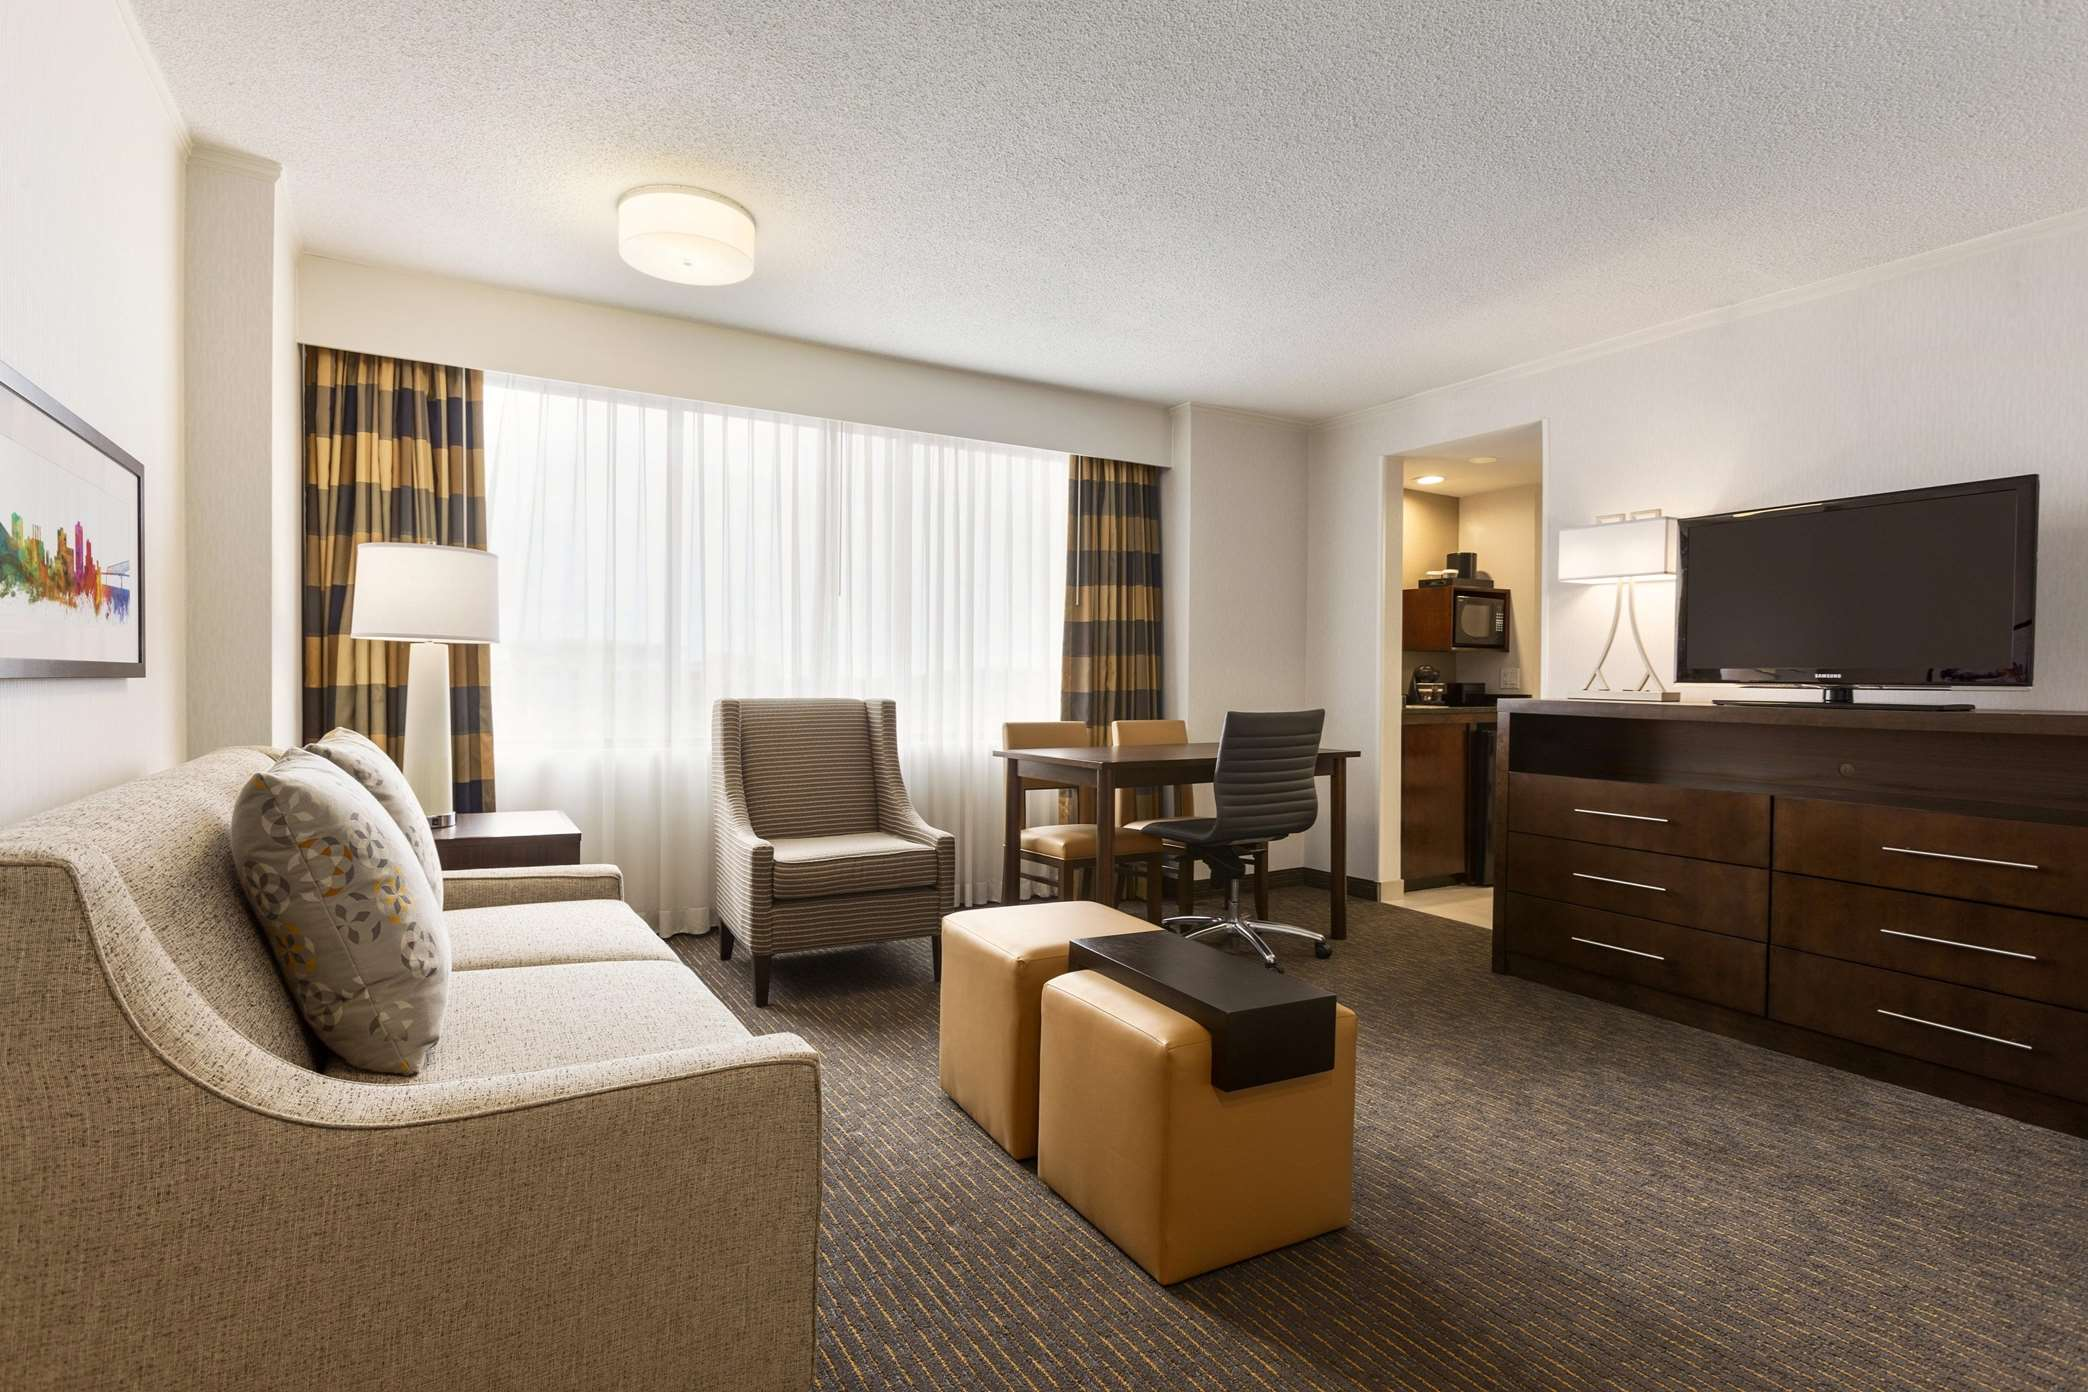 Embassy Suites by Hilton Baltimore at BWI Airport image 19